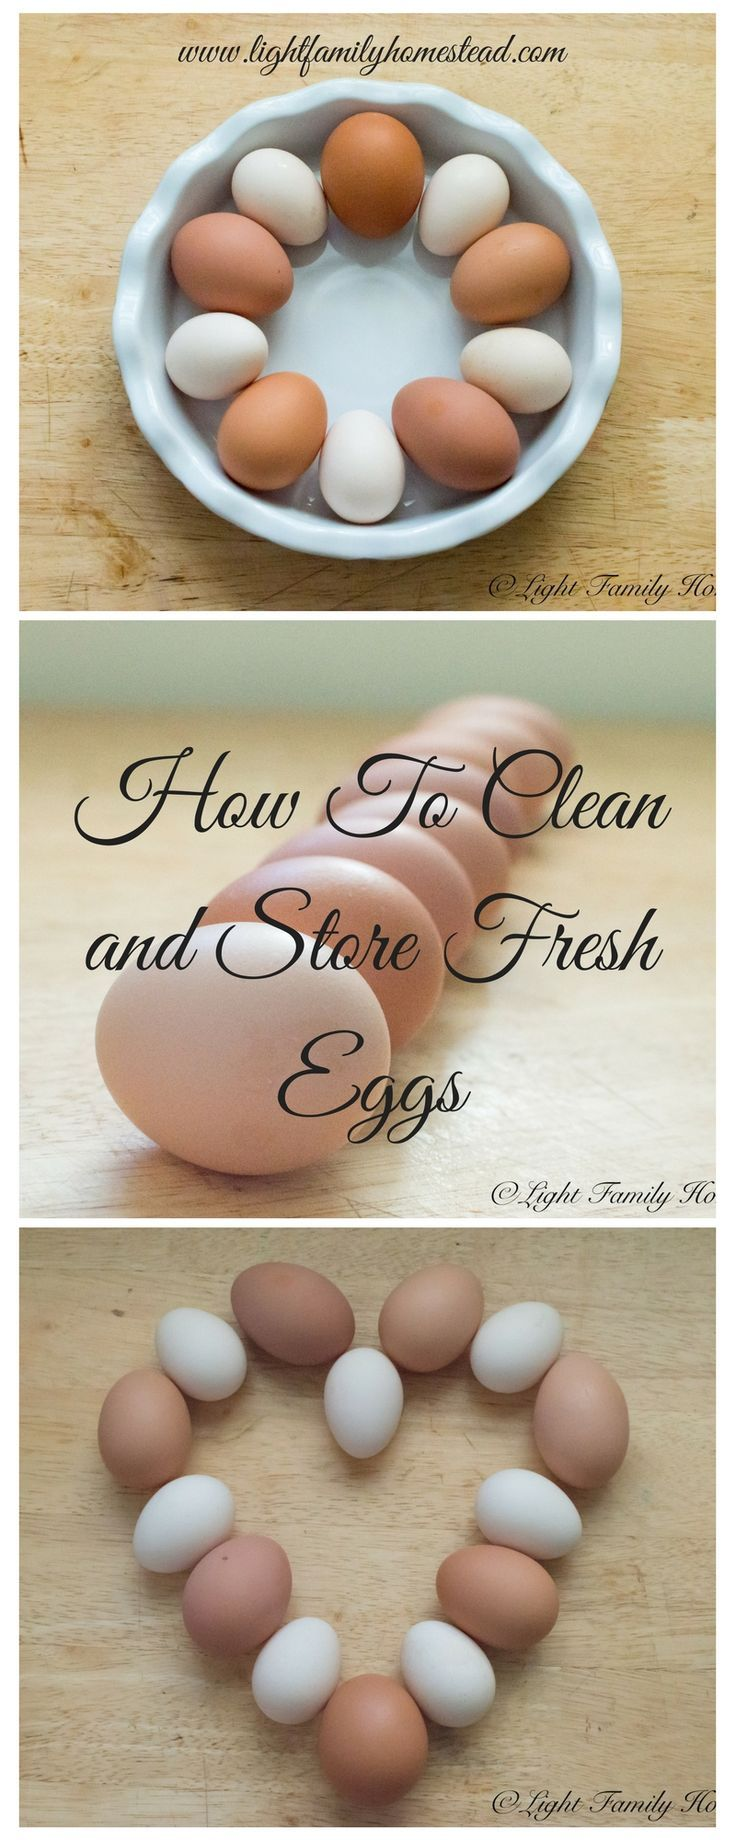 How to Clean and Store Fresh Eggs-Are you planning on raising chickens for their fresh eggs? Has a neighbor given you fresh eggs from their chickens? Check out our blog to learn how to properly wash and store your eggs. www.lightfamilyhomestead.com #fresheggs #washingeggs #chickeneggs #raisingchickens #foodstorage #eggs #chickens #hens